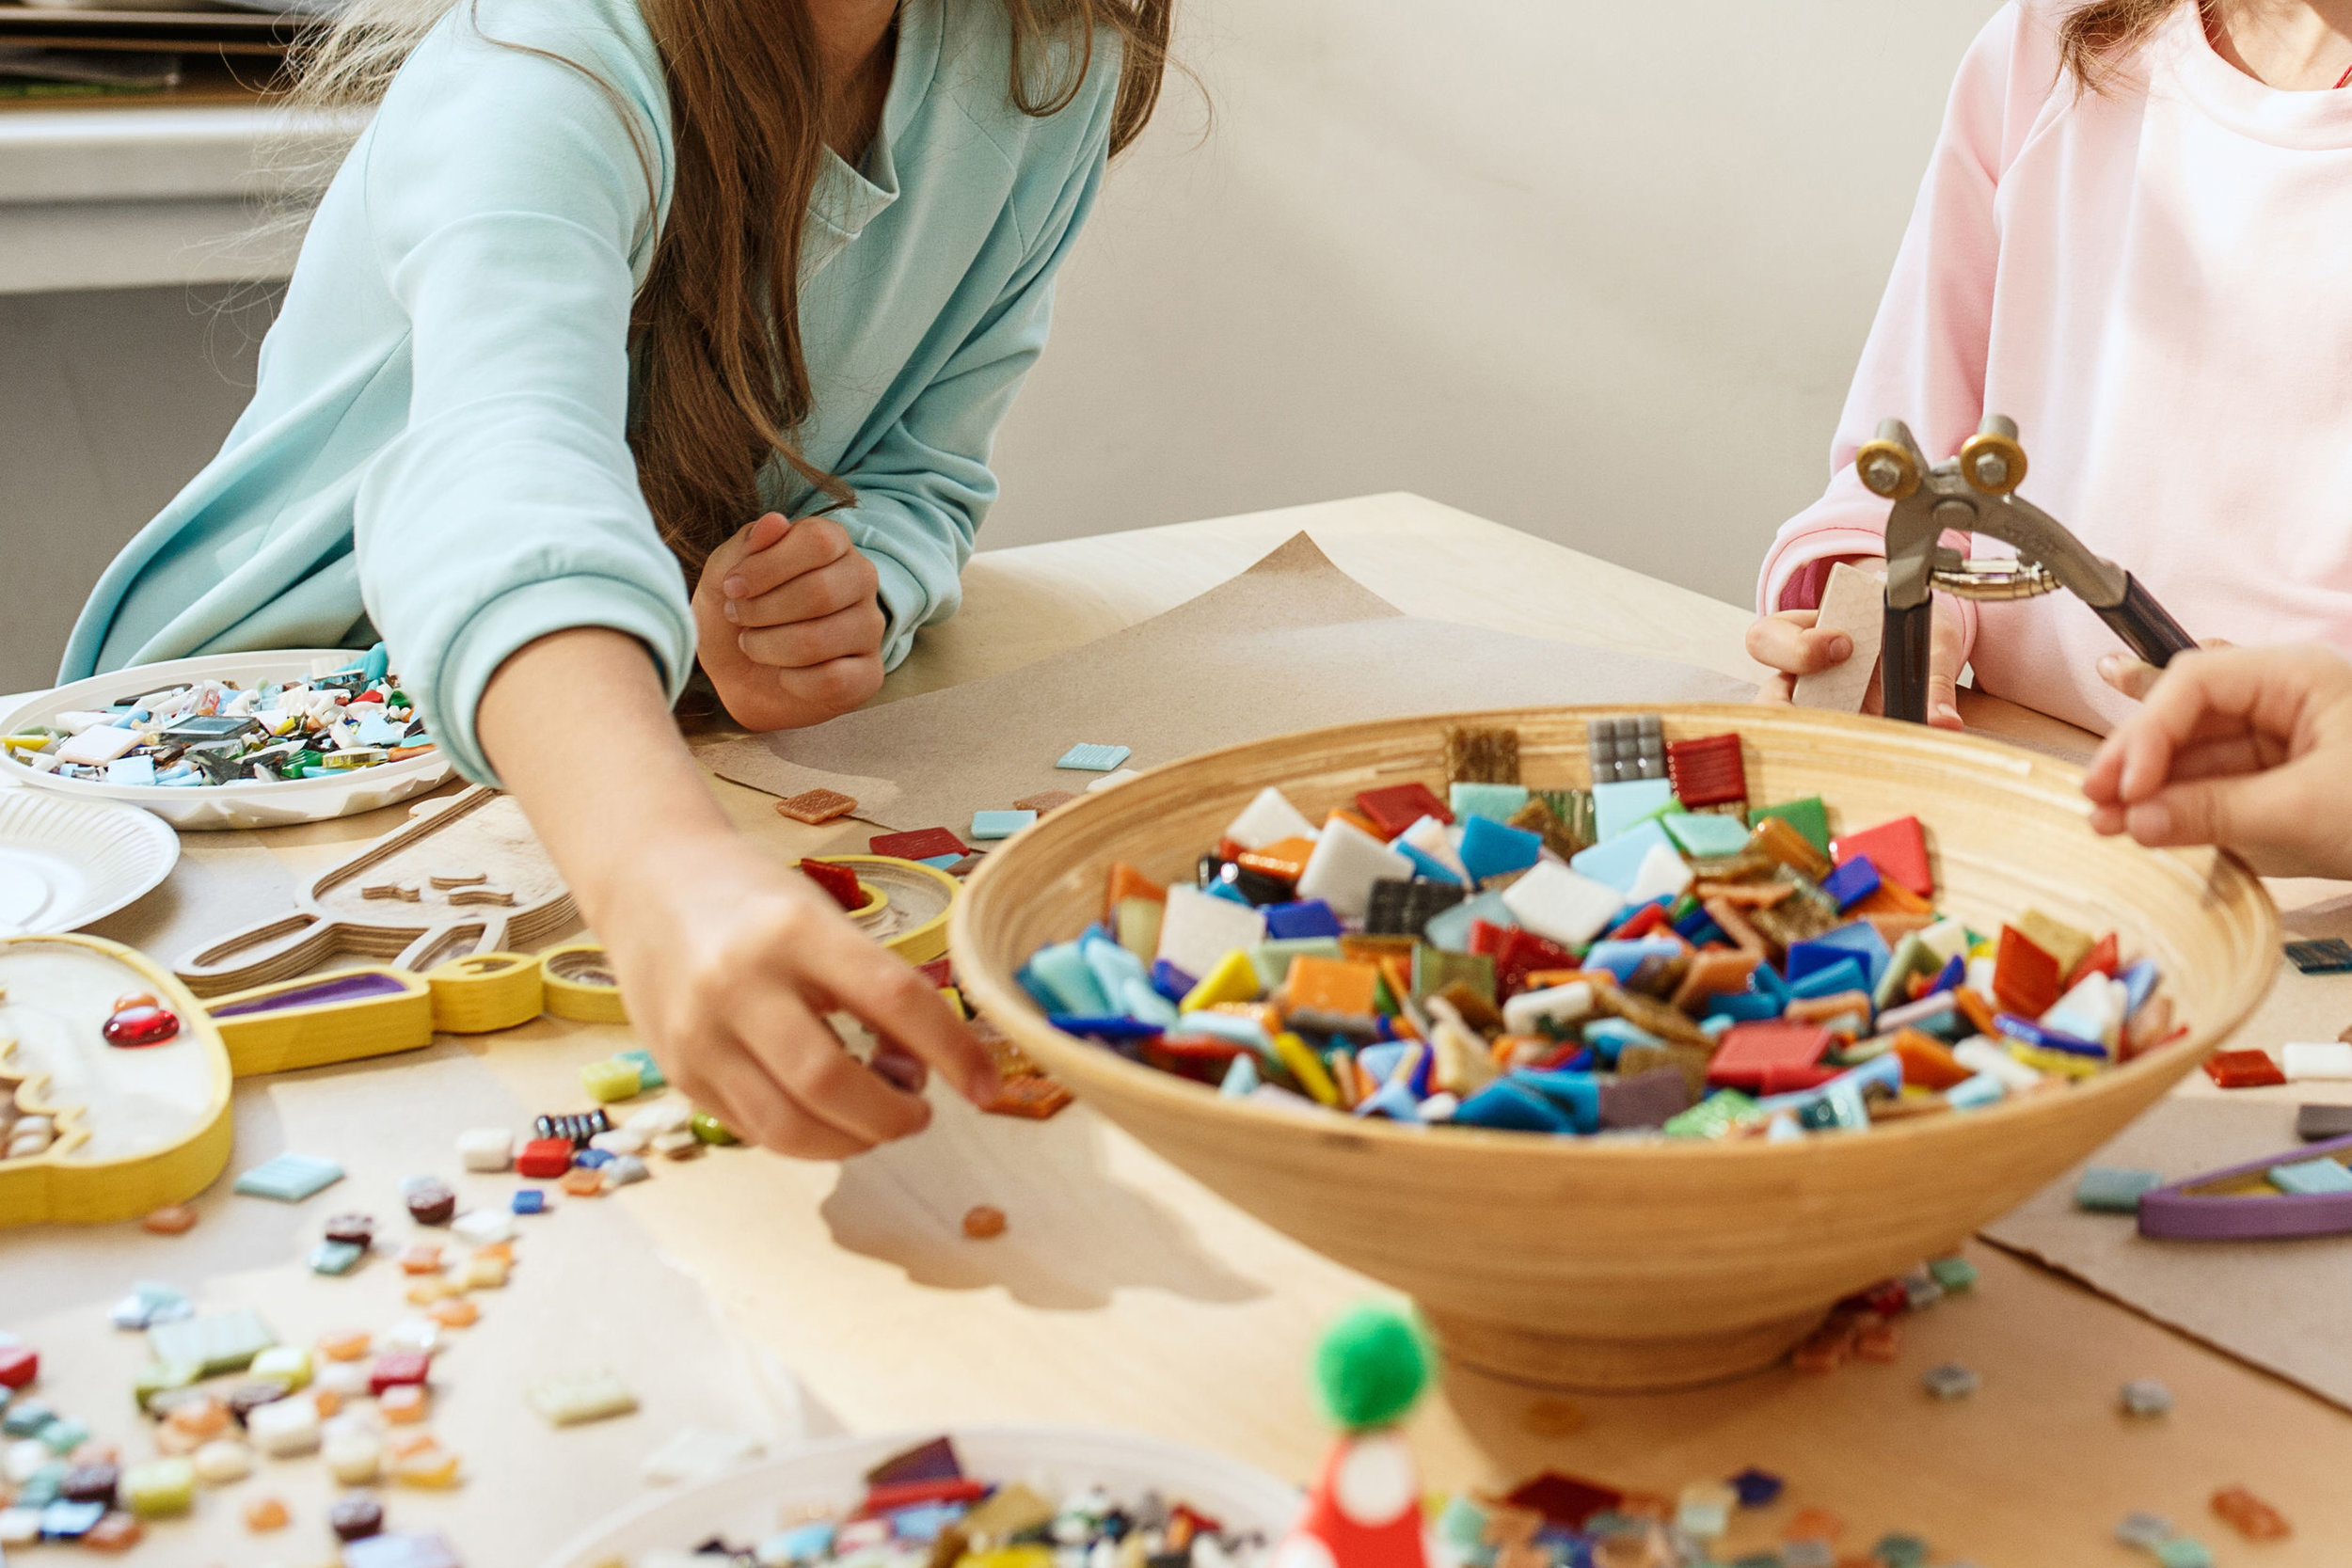 SUMMER WEEK 2 - July 8th to 12th - VISUAL STORYTELLING THROUGH MOSAICS.  AGES 5-8 & 9-12. Students will learn how to plan and create beautiful imagery through the variety of patterns and colours of mosaic pieces and other materials.  STUDENTS will learn about the art of mosaics: where and when mosaics were used throughout history, planning and development of imagery and storytelling as well as applying mosaic techniques. See more below.